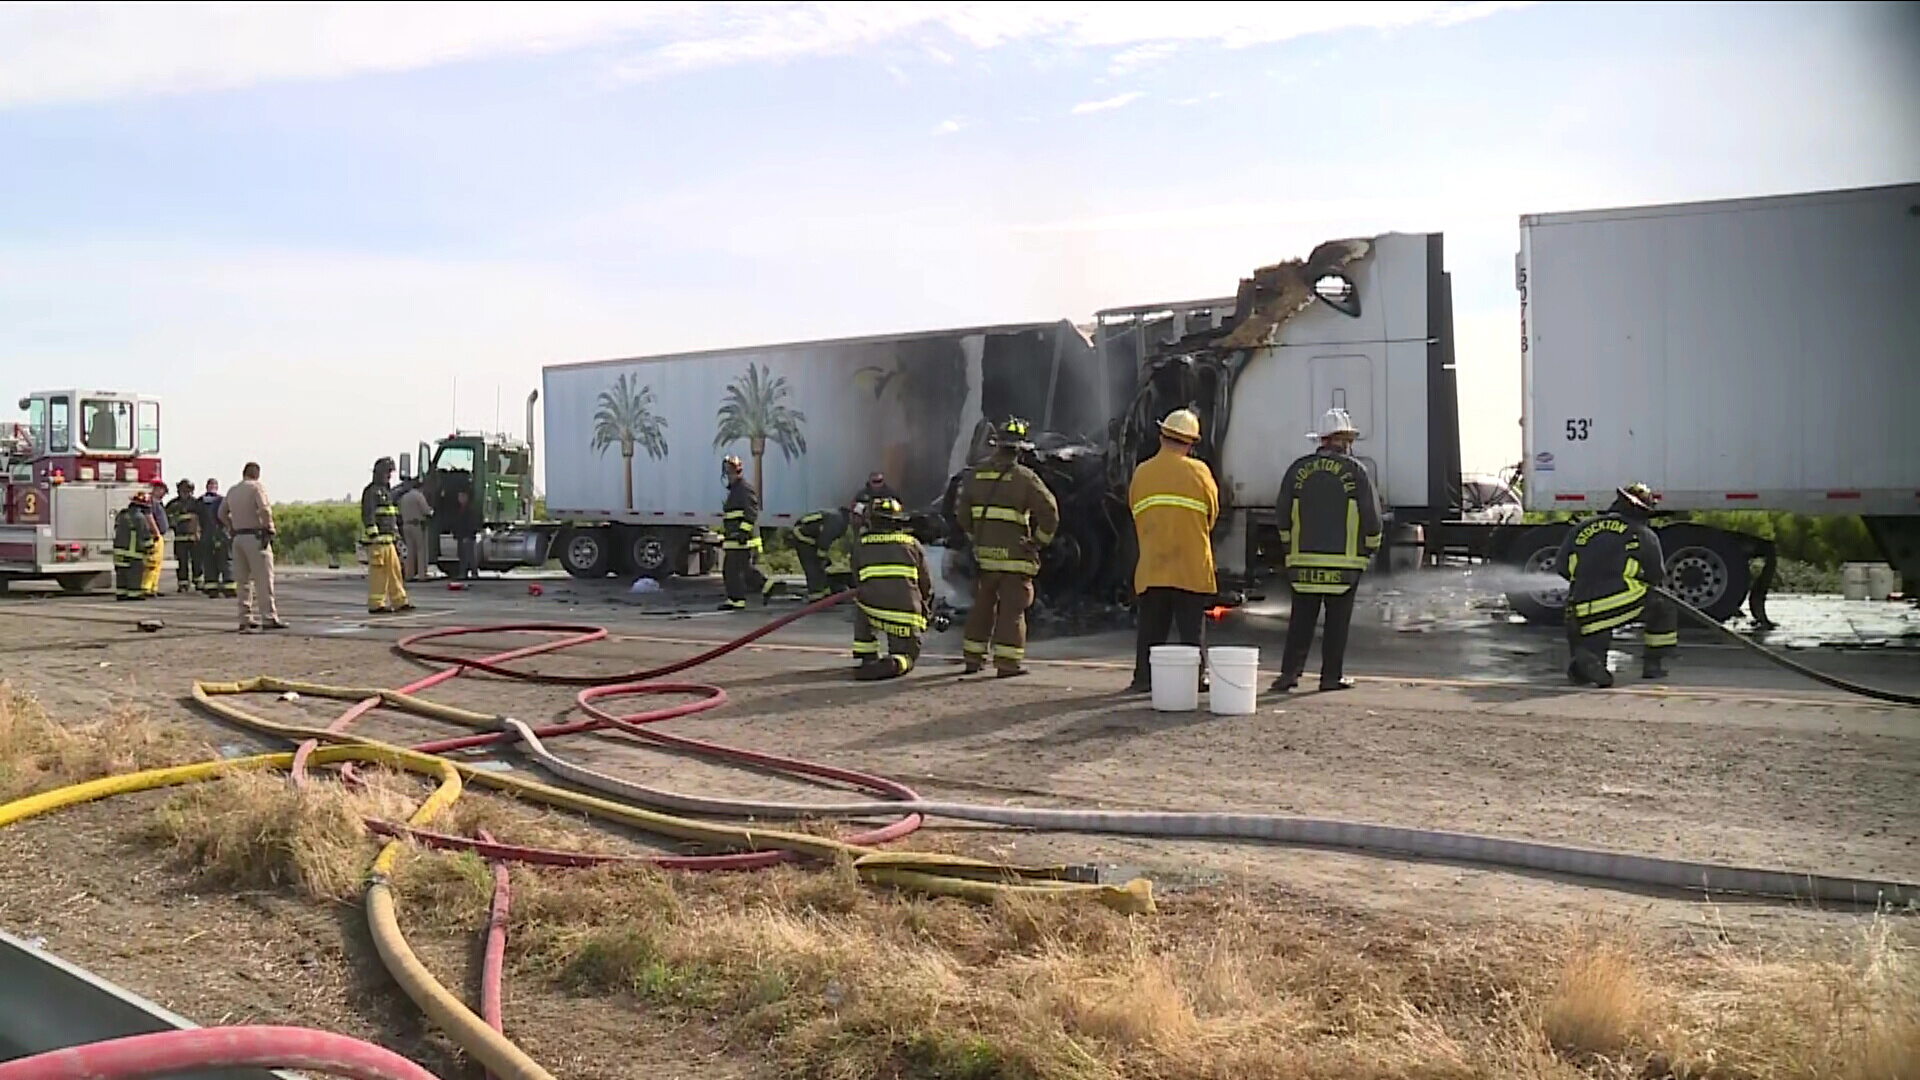 2 Dead In Chain-Reaction Crash Involving Big Rigs, Sedans